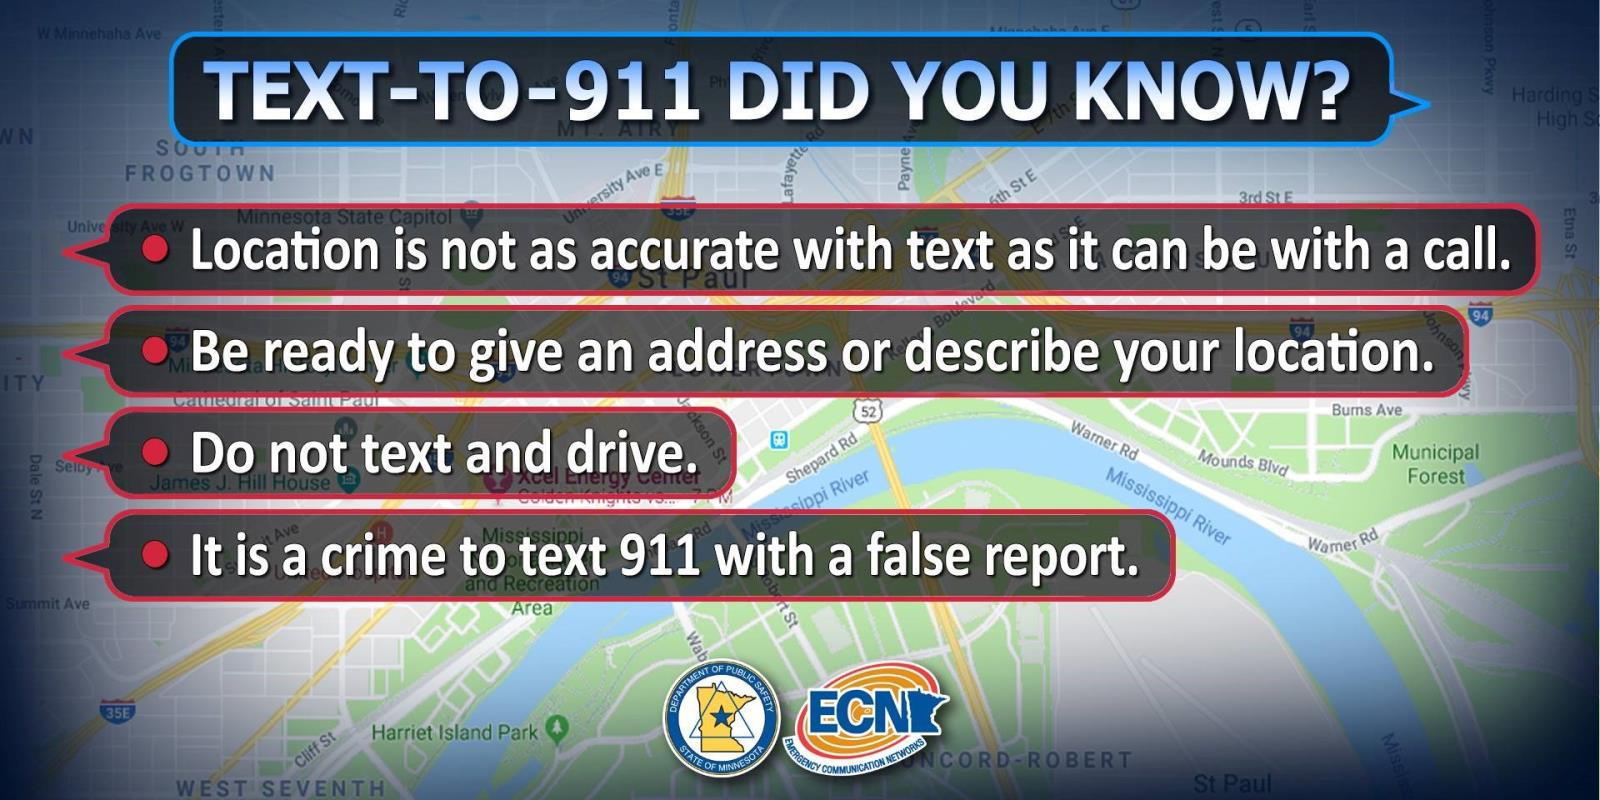 Text To 911 Did You Know?